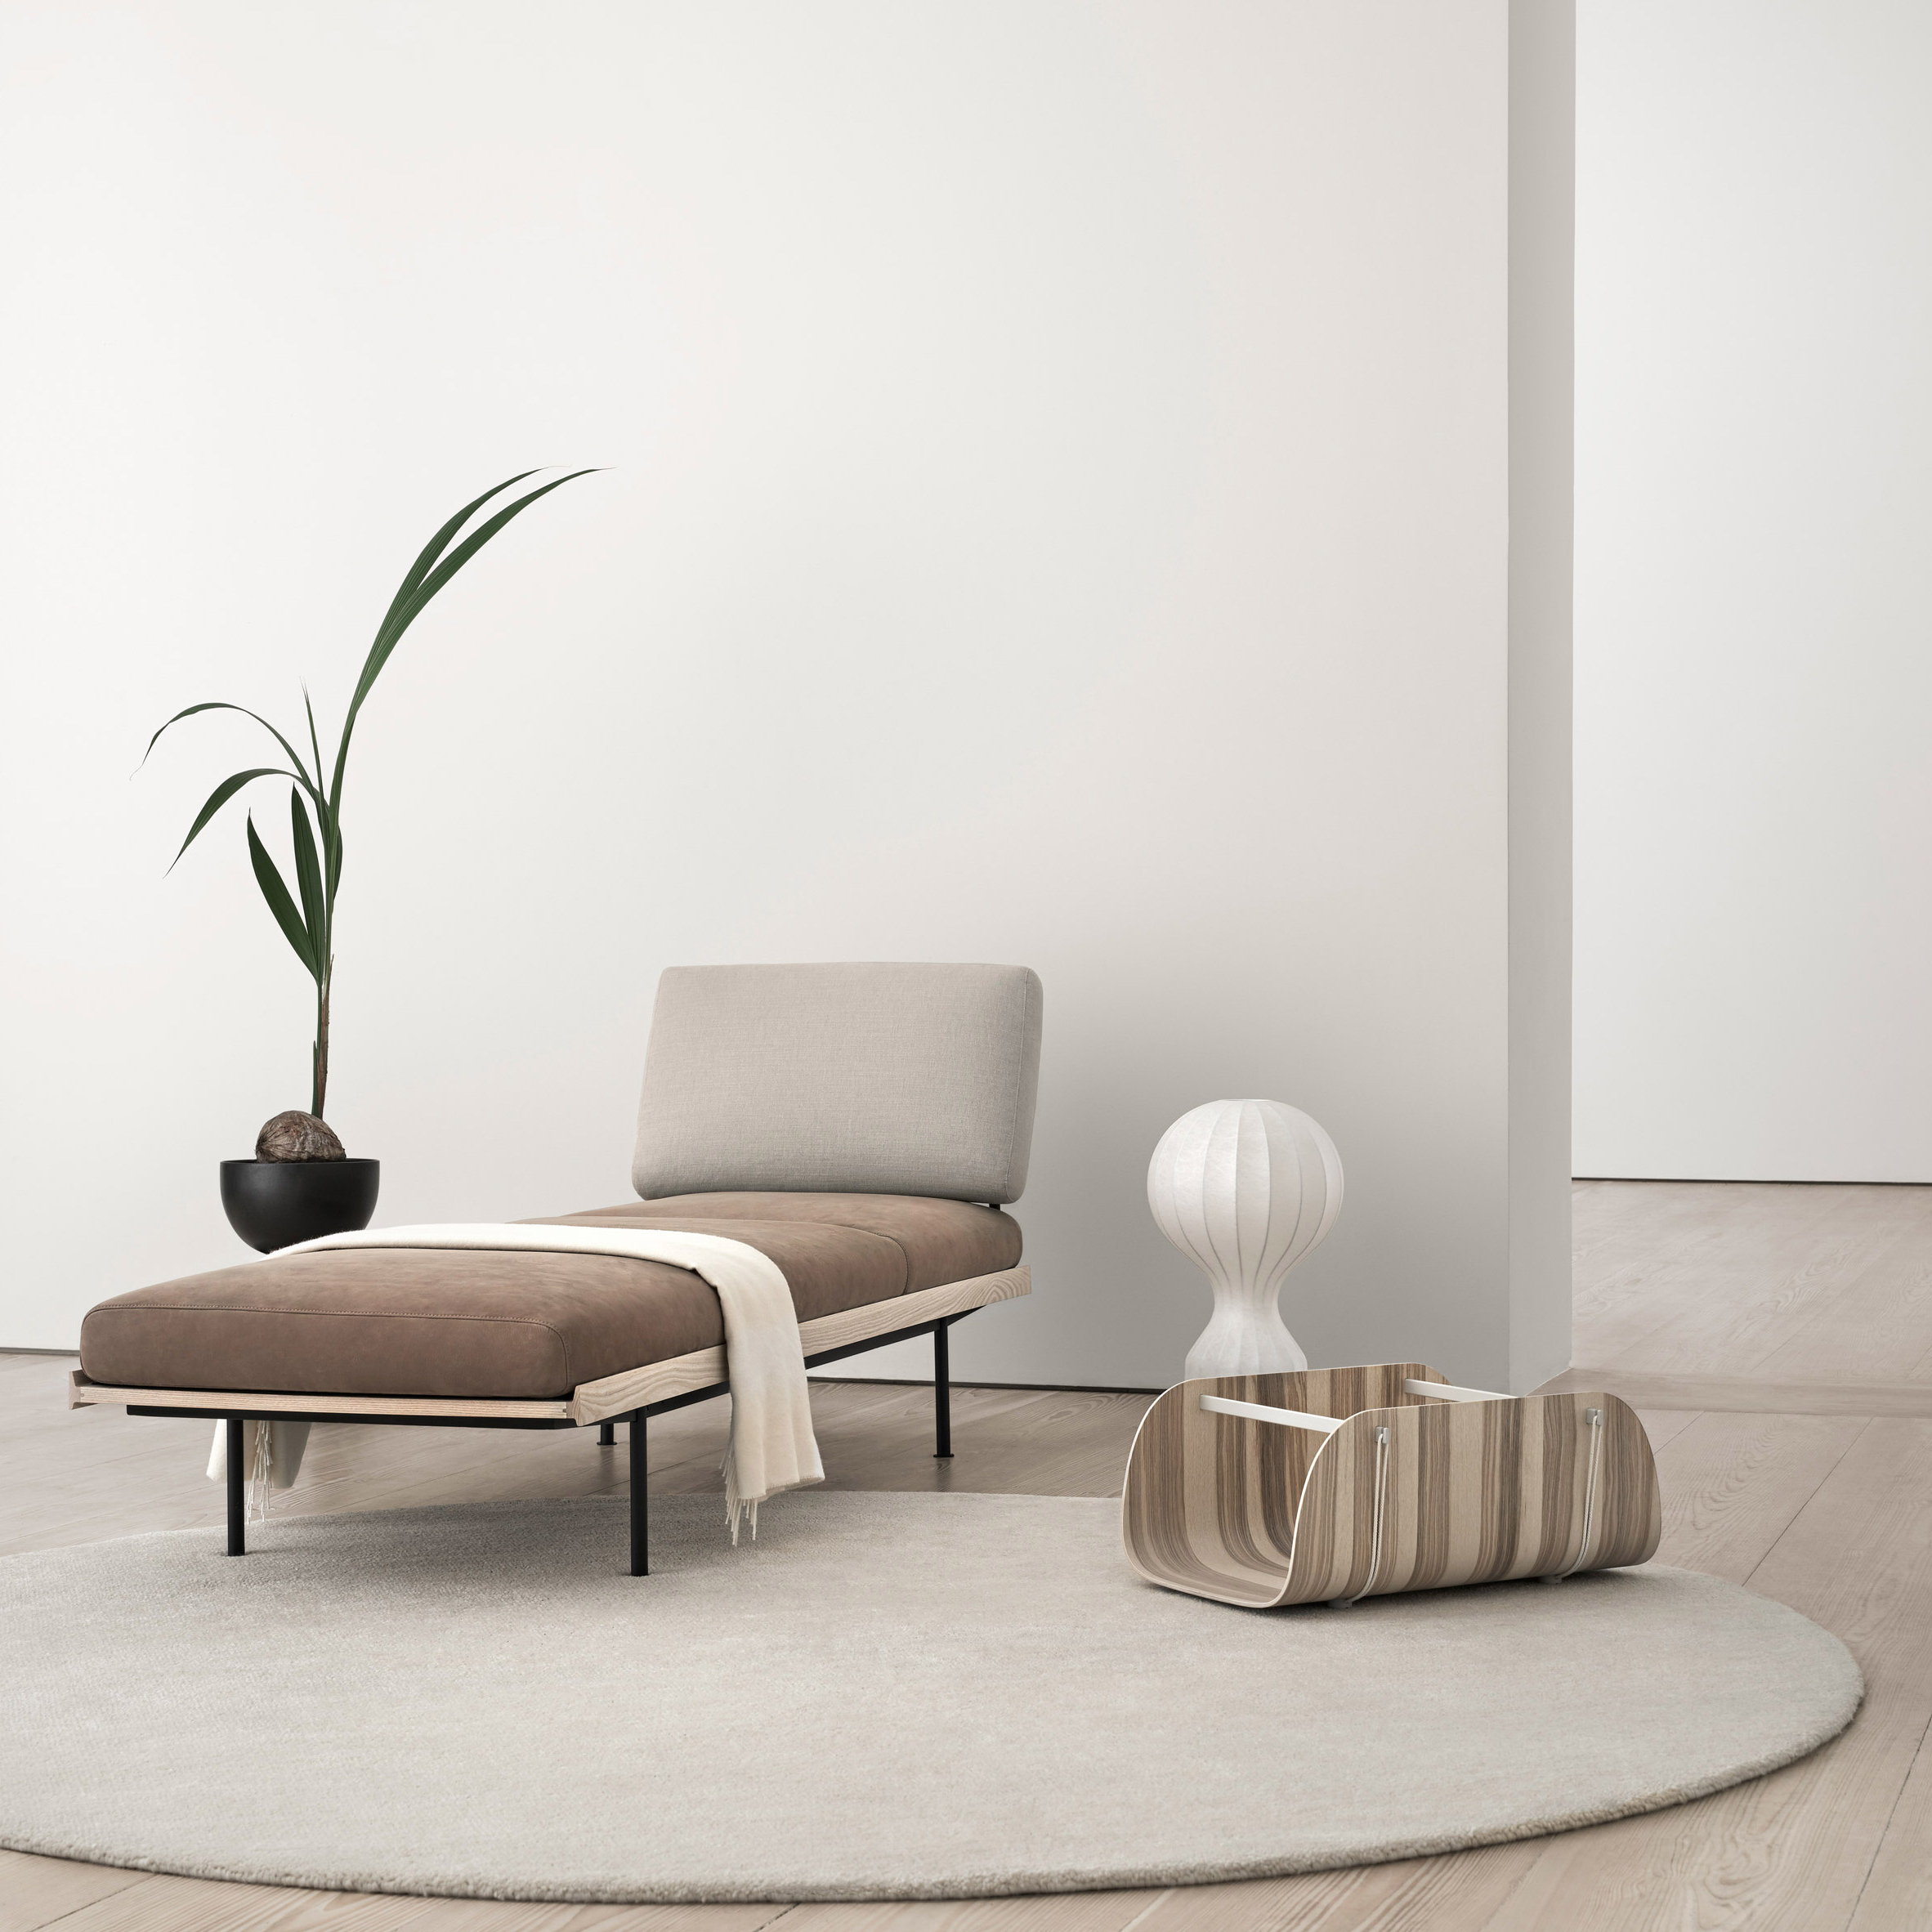 Furniture Qwdq Voice Launches Accessible Scandinavian Furniture Collection